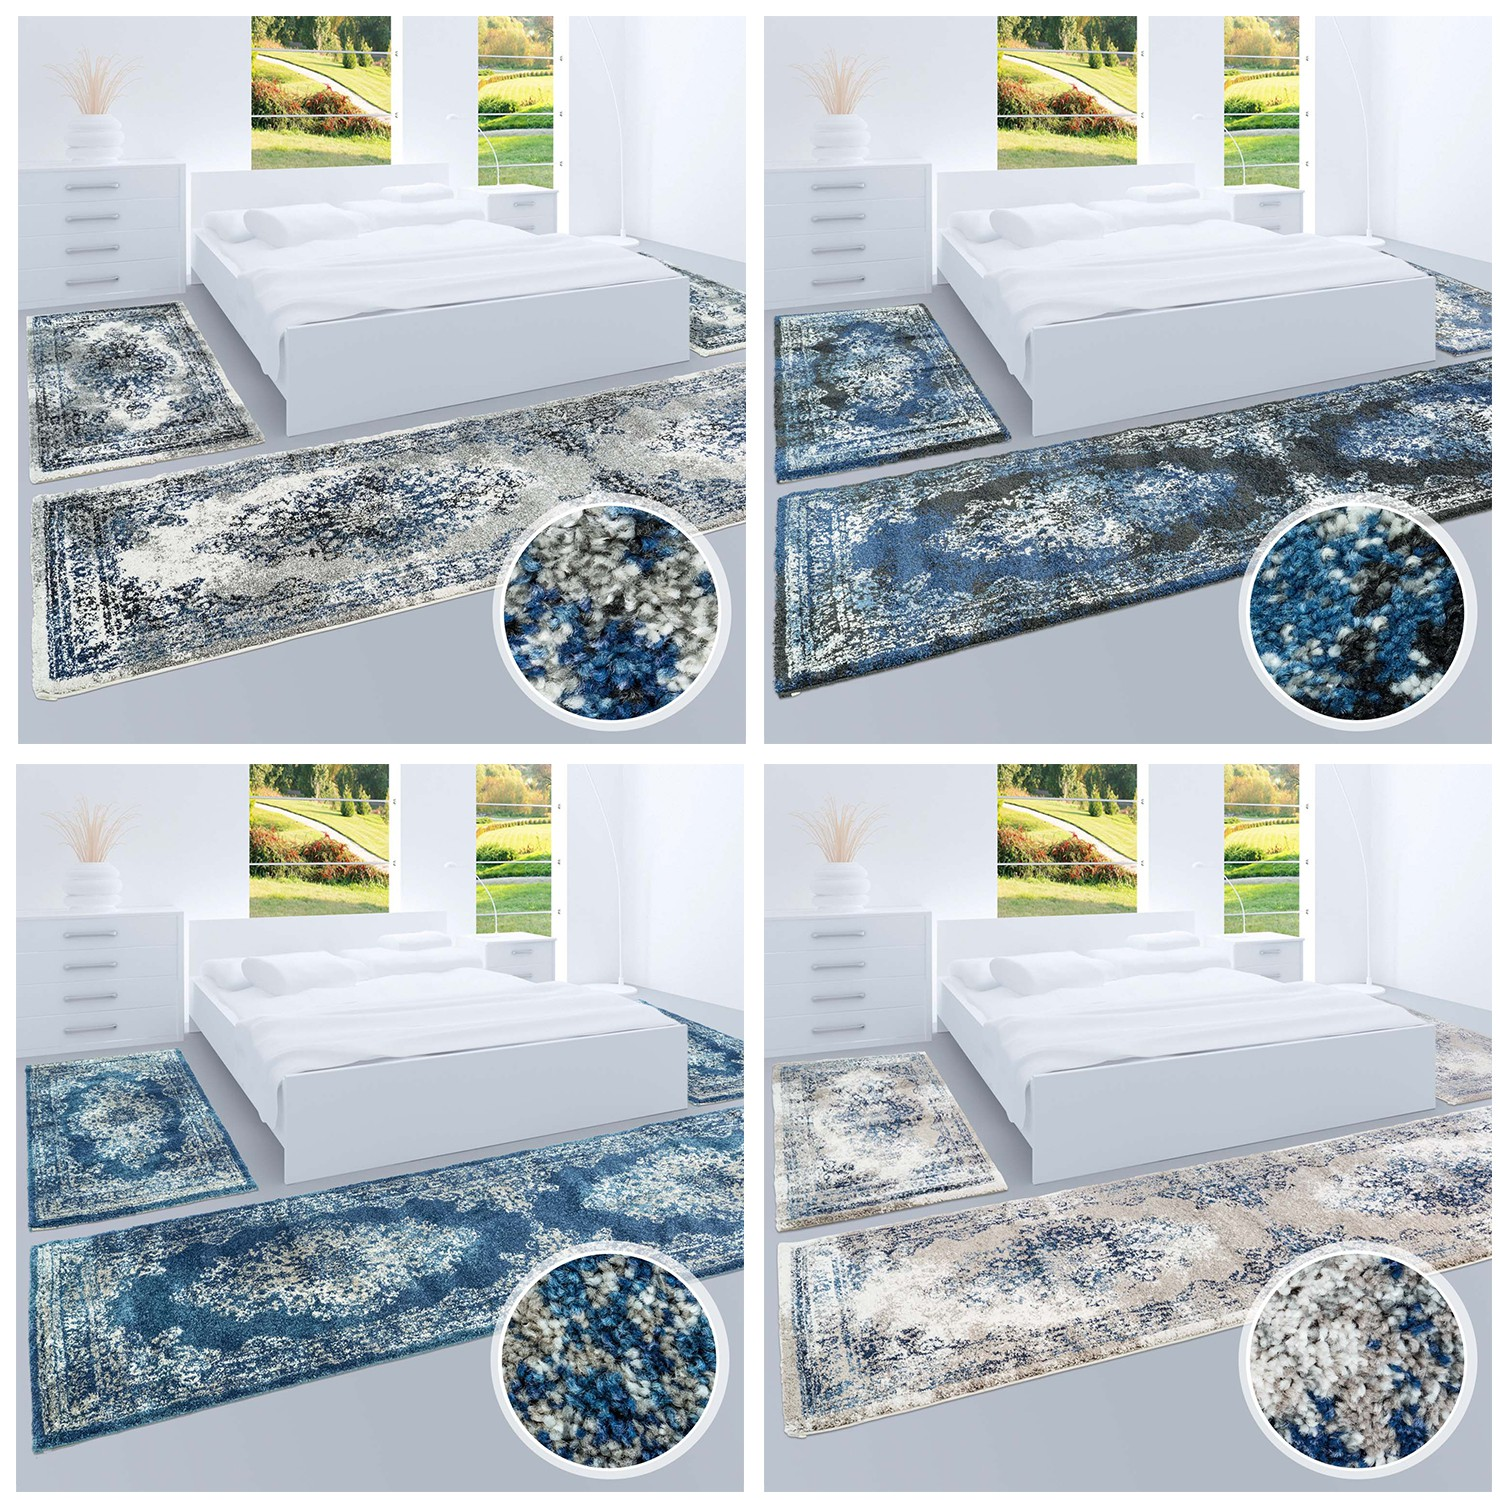 hochwertiger bettumrandung teppich flachflor orientalisch klassisch ornamente modern blau beige. Black Bedroom Furniture Sets. Home Design Ideas